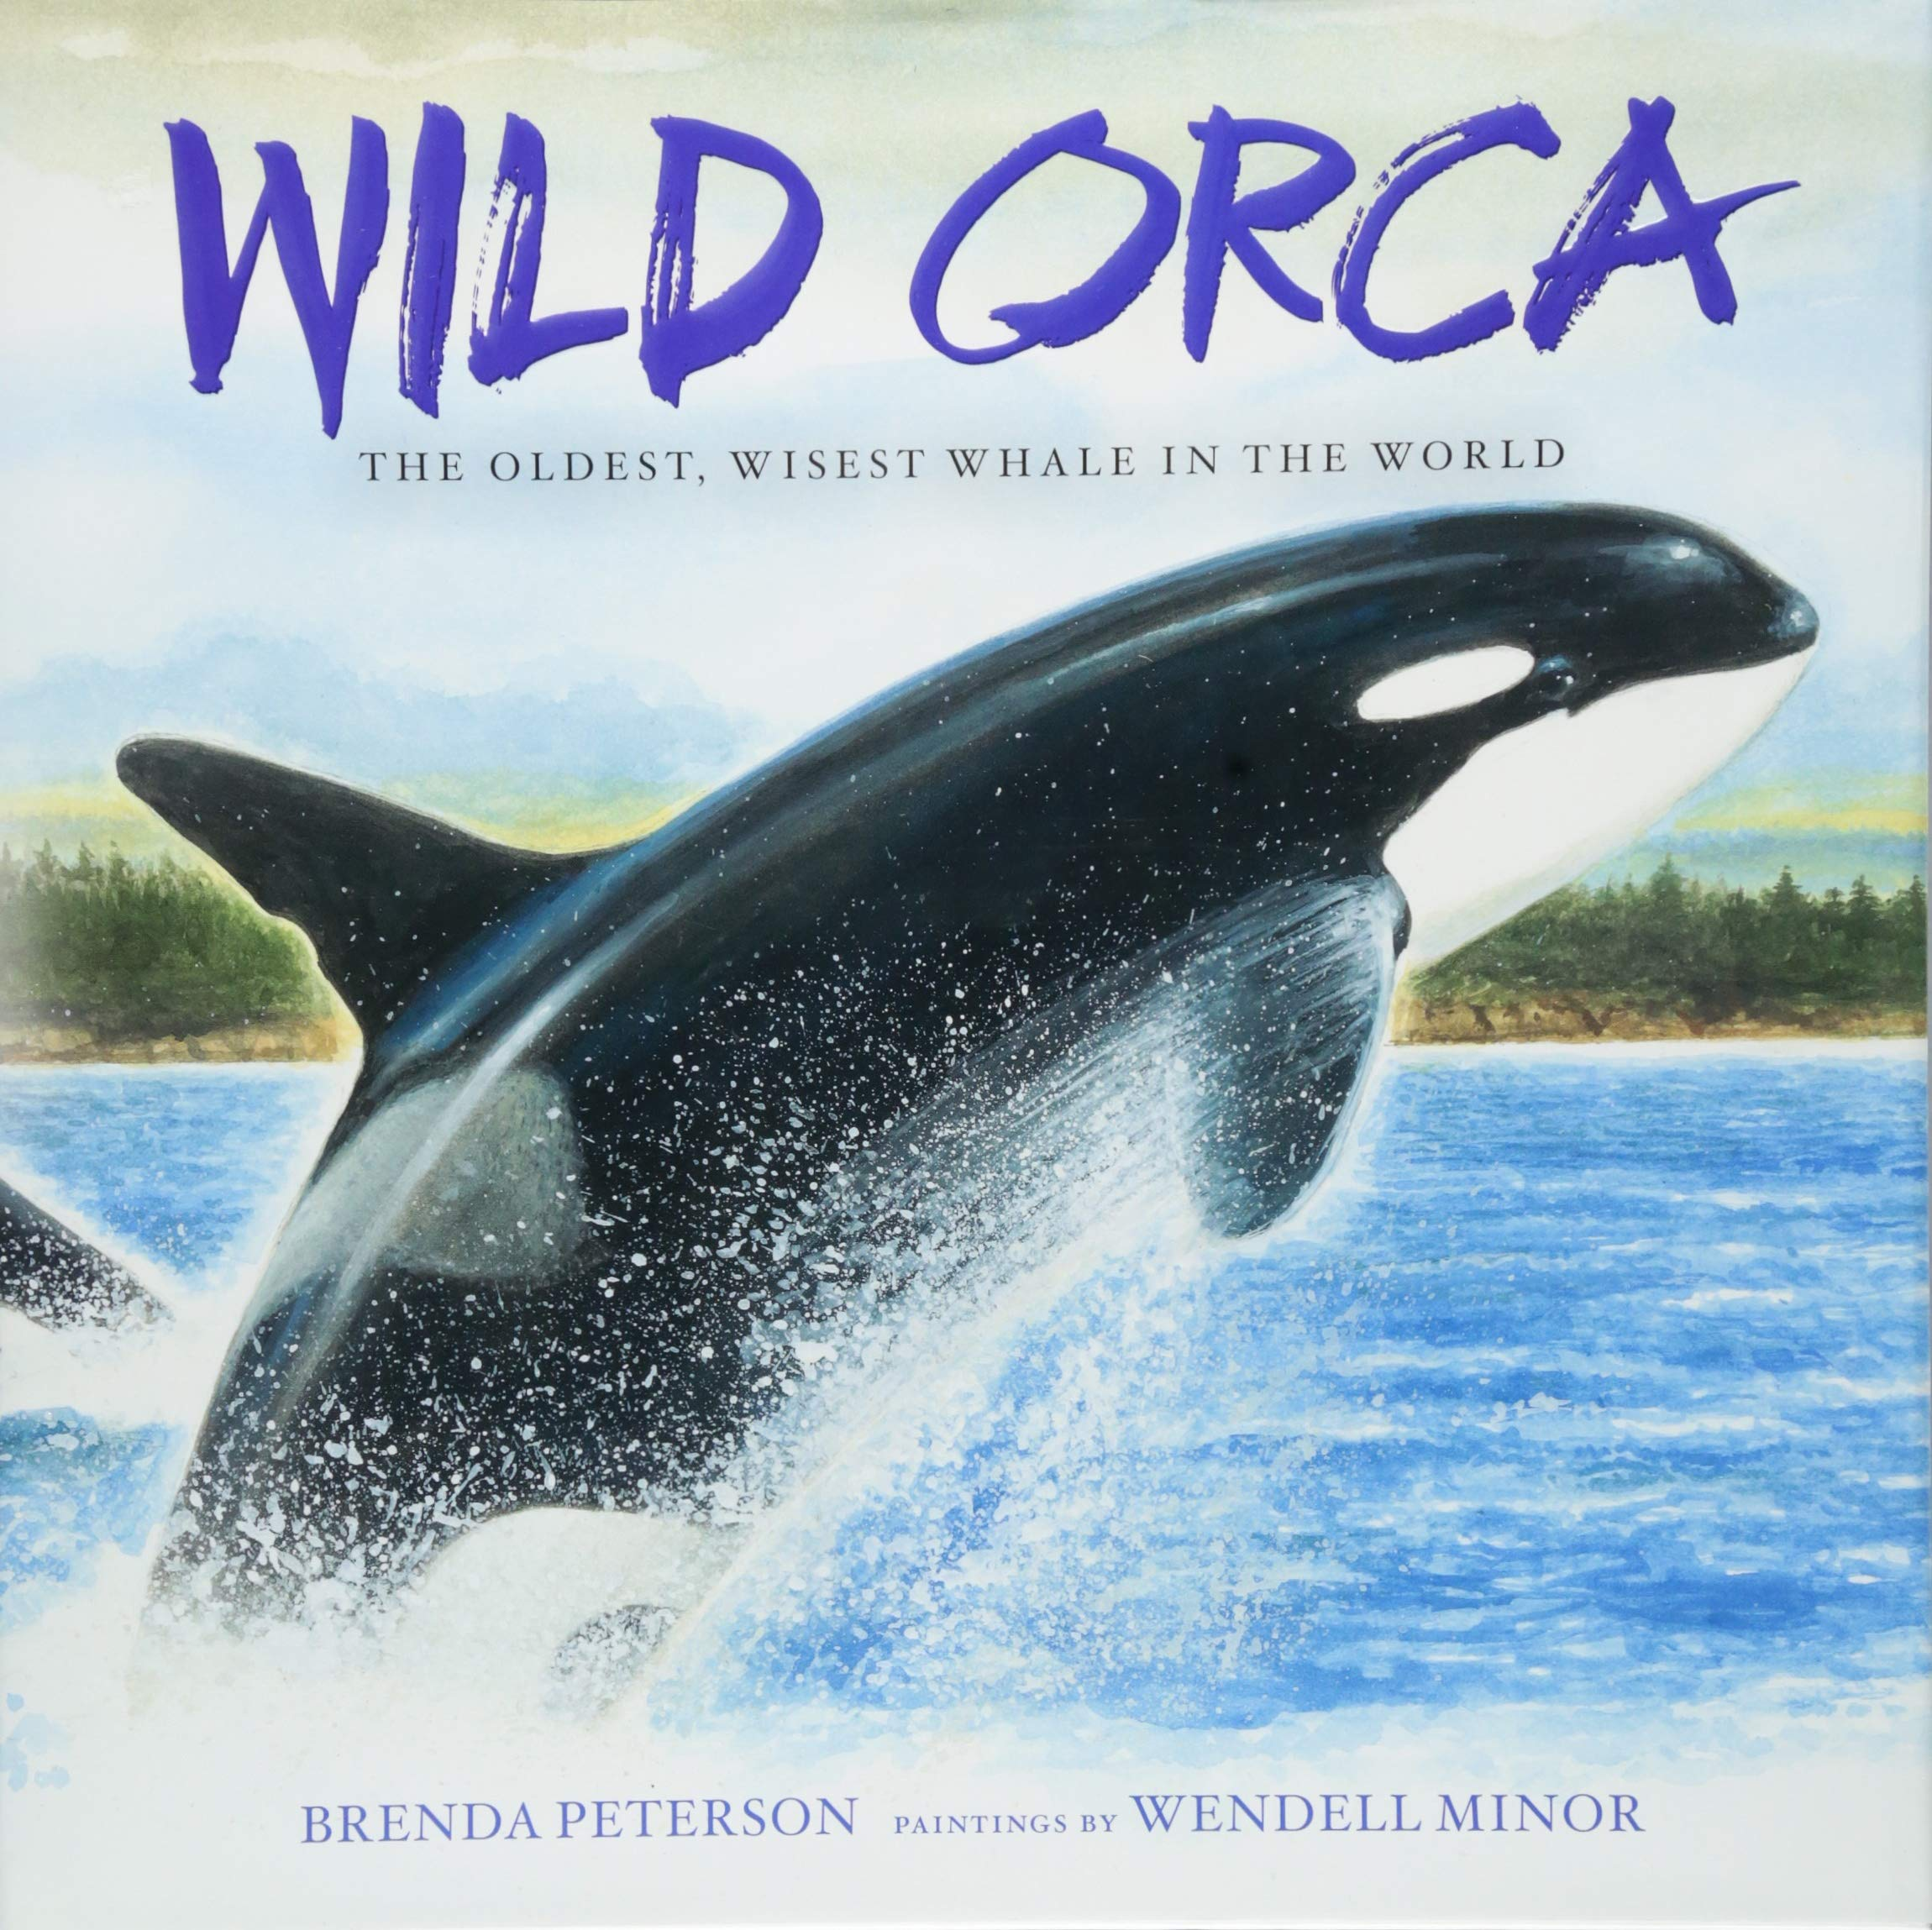 Wild Orca: The Oldest, Wisest Whale in the World: Brenda